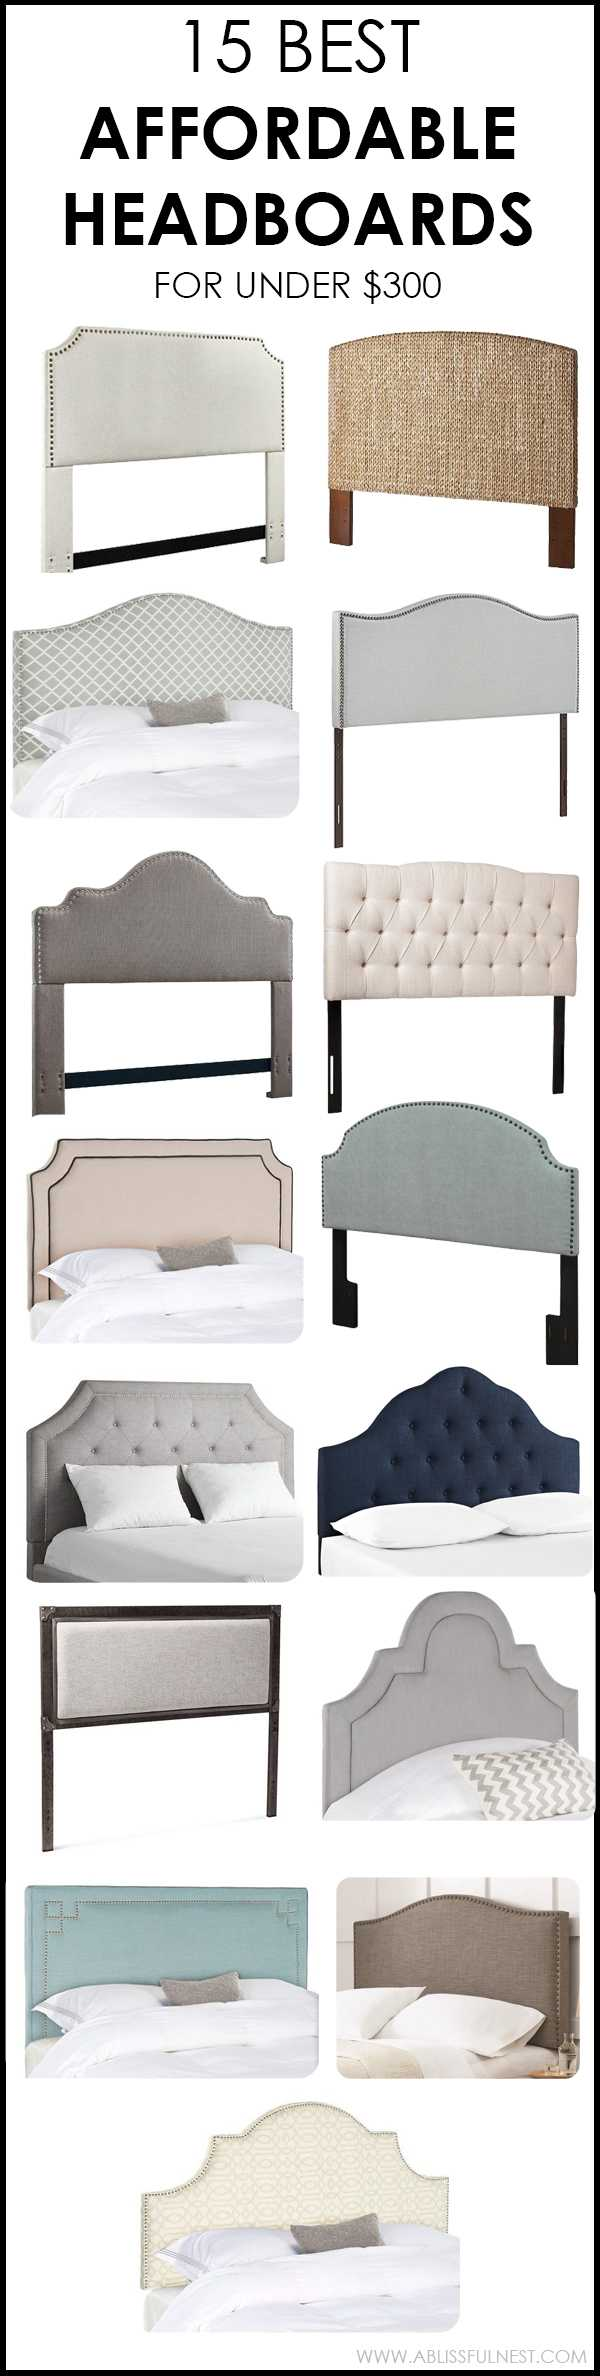 affordable headboards under  with lots of style, Headboard designs